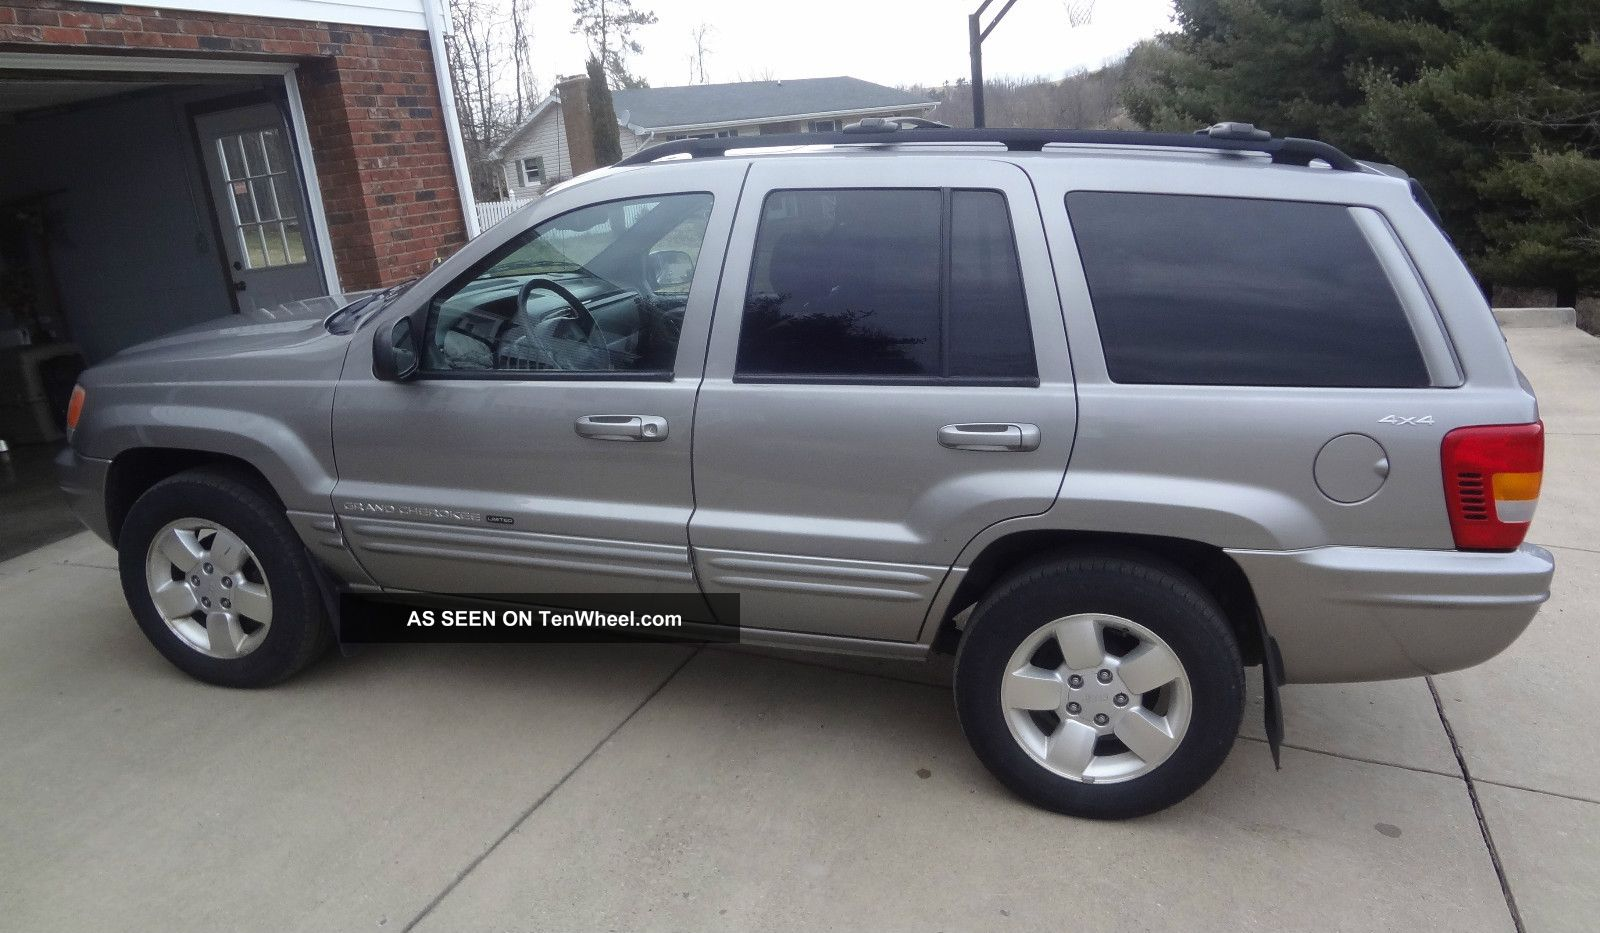 2001 Grand Cherokee Jeep Limited Silver V8 4x4 Suv Vehicle Car